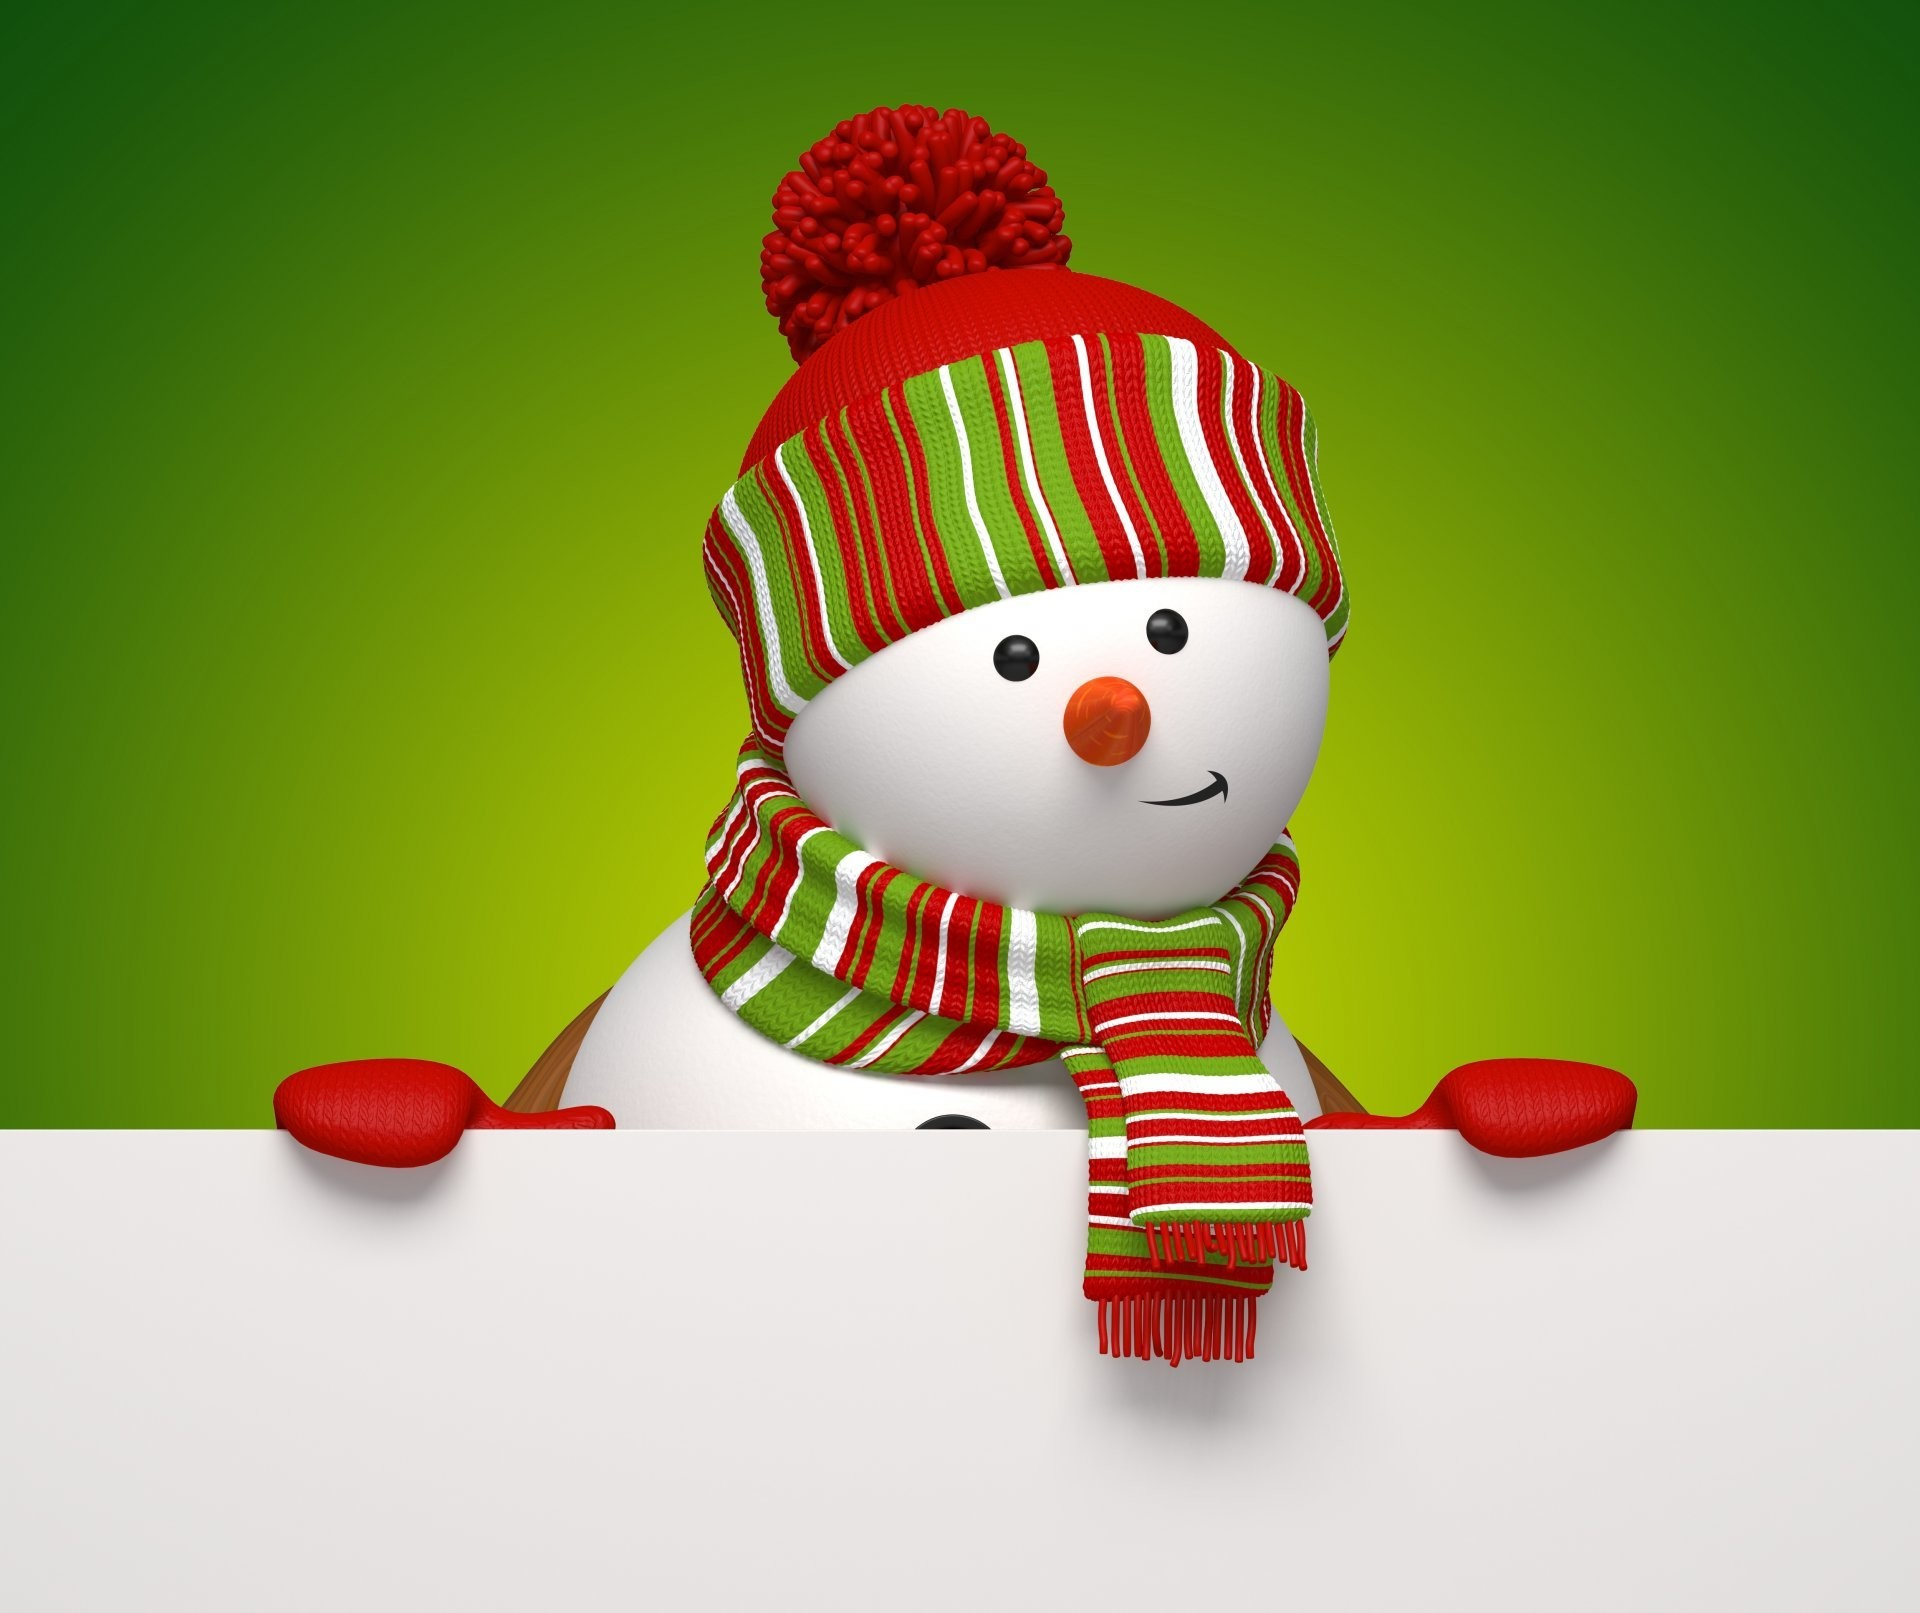 snow man Find and save ideas about snowman on pinterest | see more ideas about xmas crafts, snowman crafts and easy diy xmas crafts.